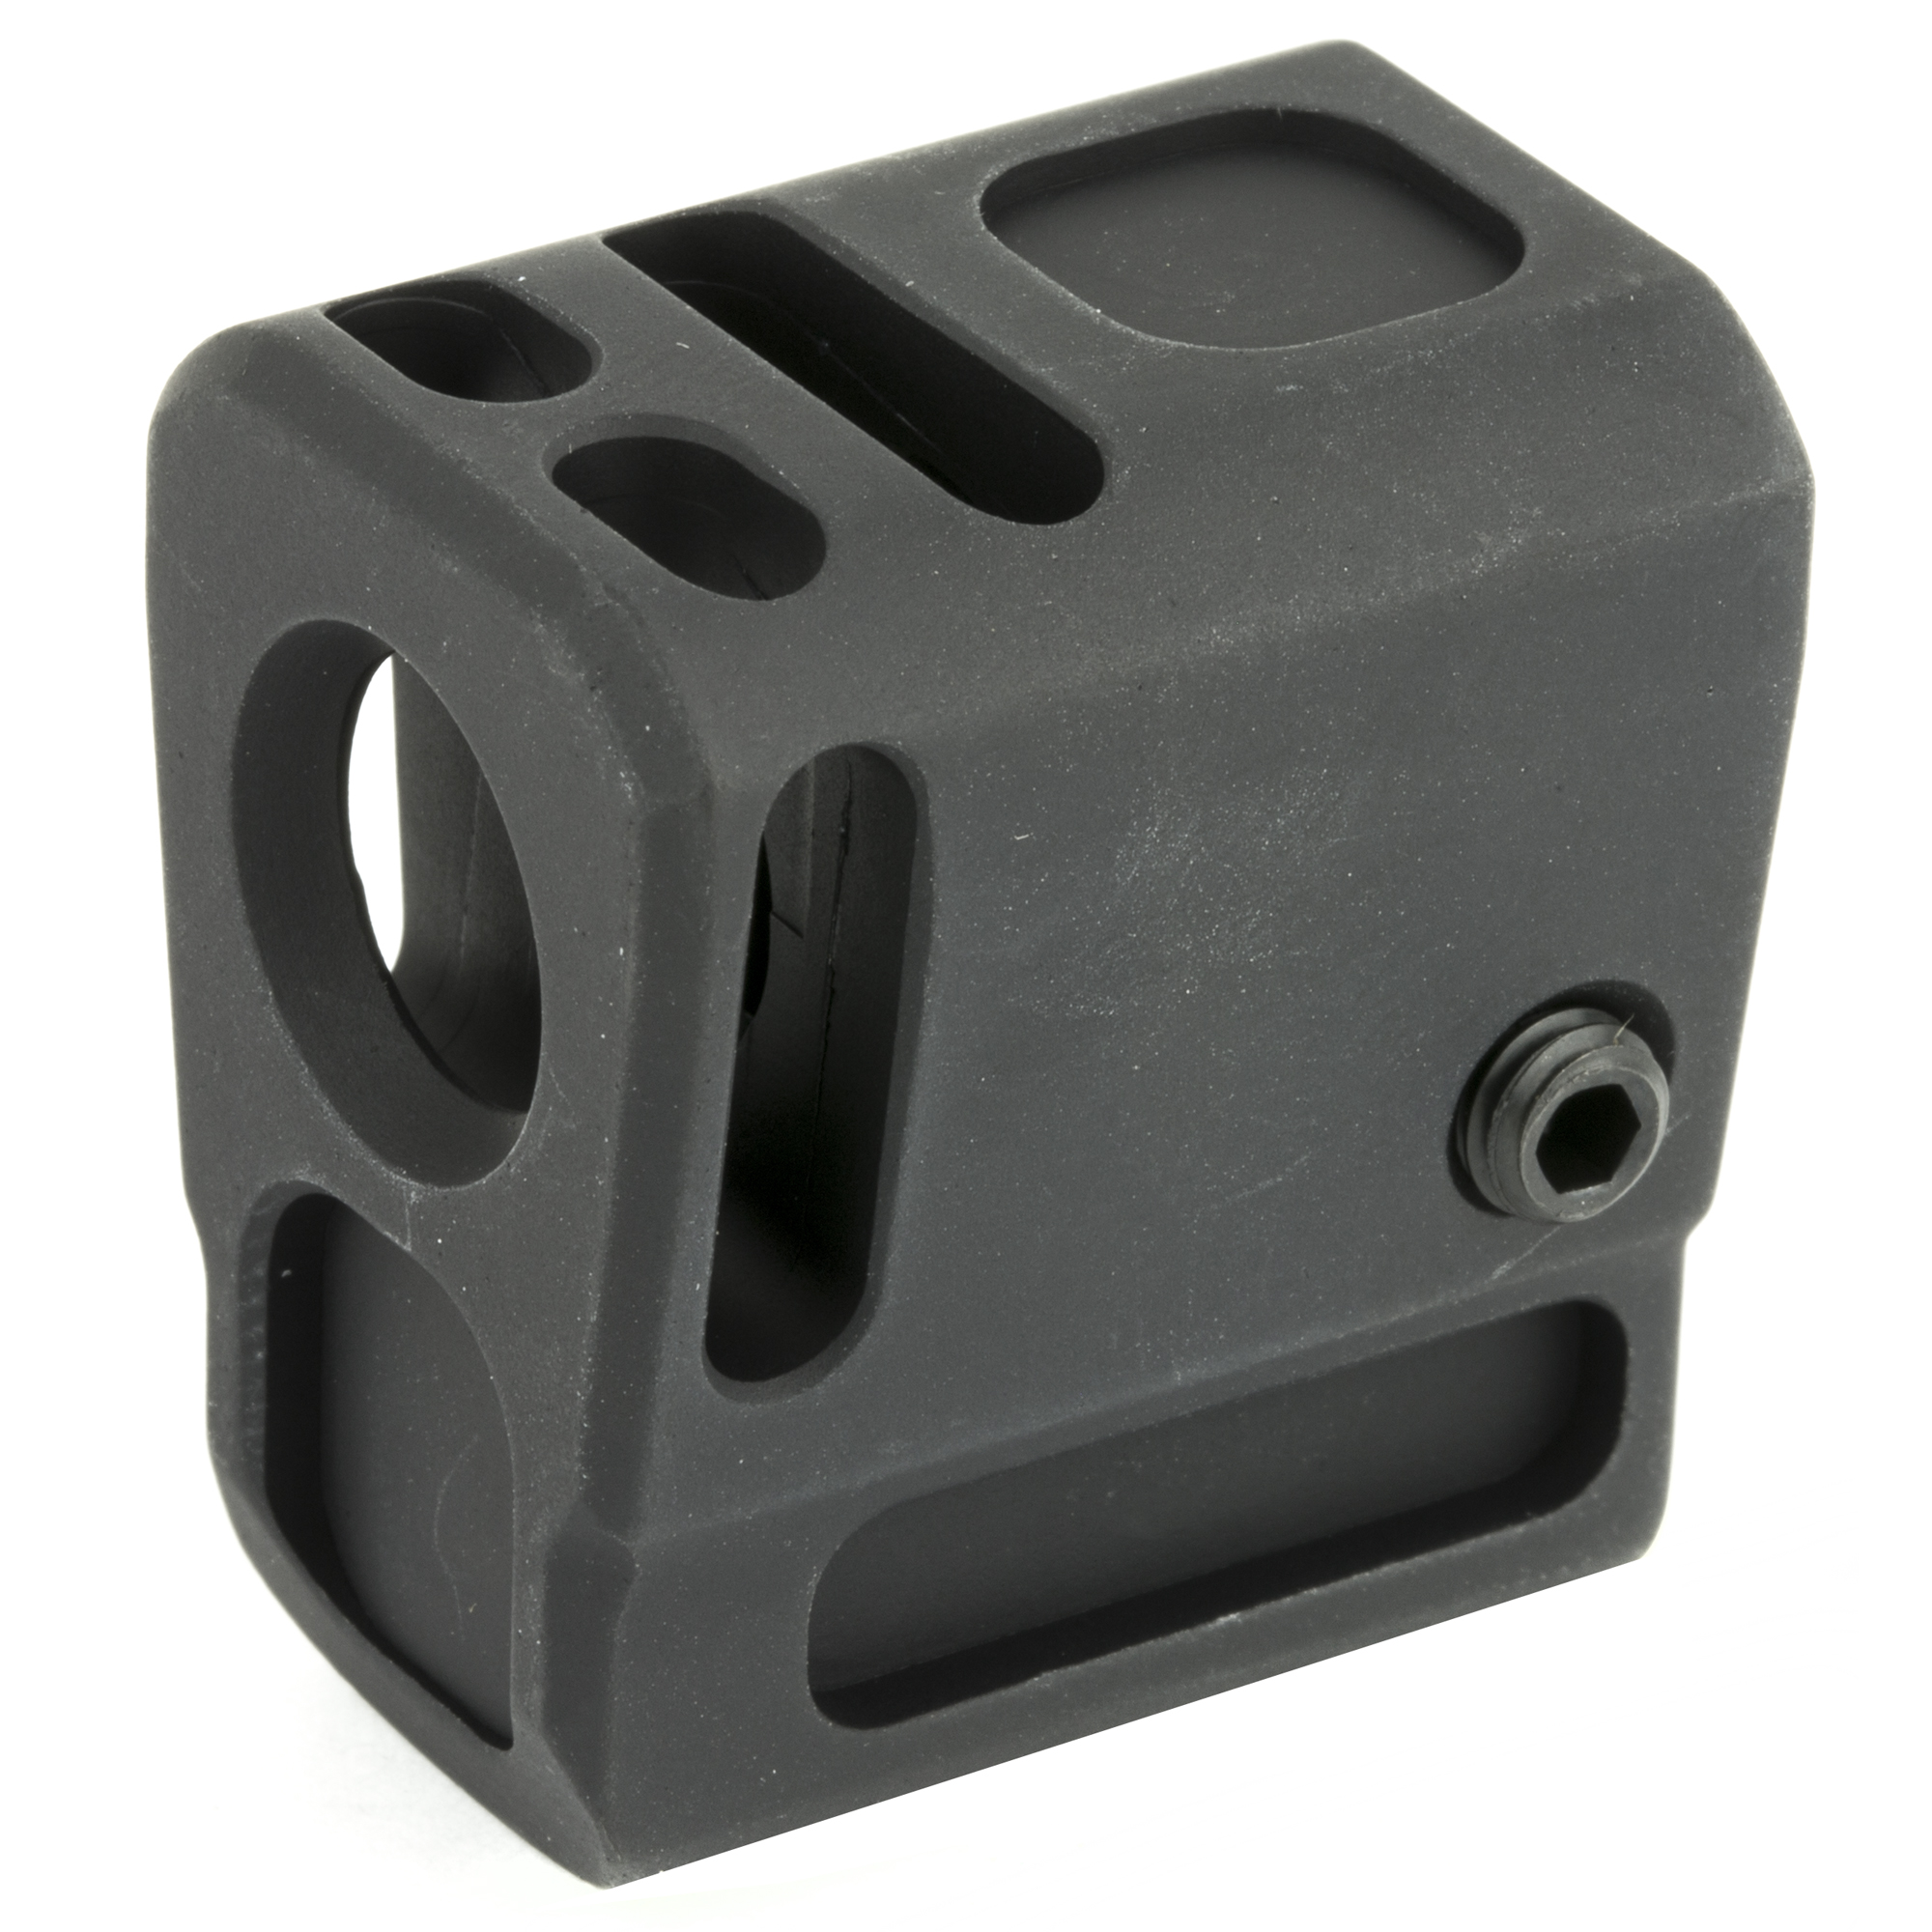 """Designed to fit 1/2x28 threaded barrels"""" the Samson Pocket Comp for the M&P 9 Shield and M&P 9 Shield M2.0 installs in minutes without the need for gunsmithing. The Samson design uses a threaded interface which protects the barrel threads unlike conventional compensators. The Pocket Comp efficiently reduces felt recoil and muzzle rise"""" allowing faster recovery between shots with iron-sight or red-dot equipped pistols. It functions with the factory recoil spring using a wide range of bullet weights and velocities."""